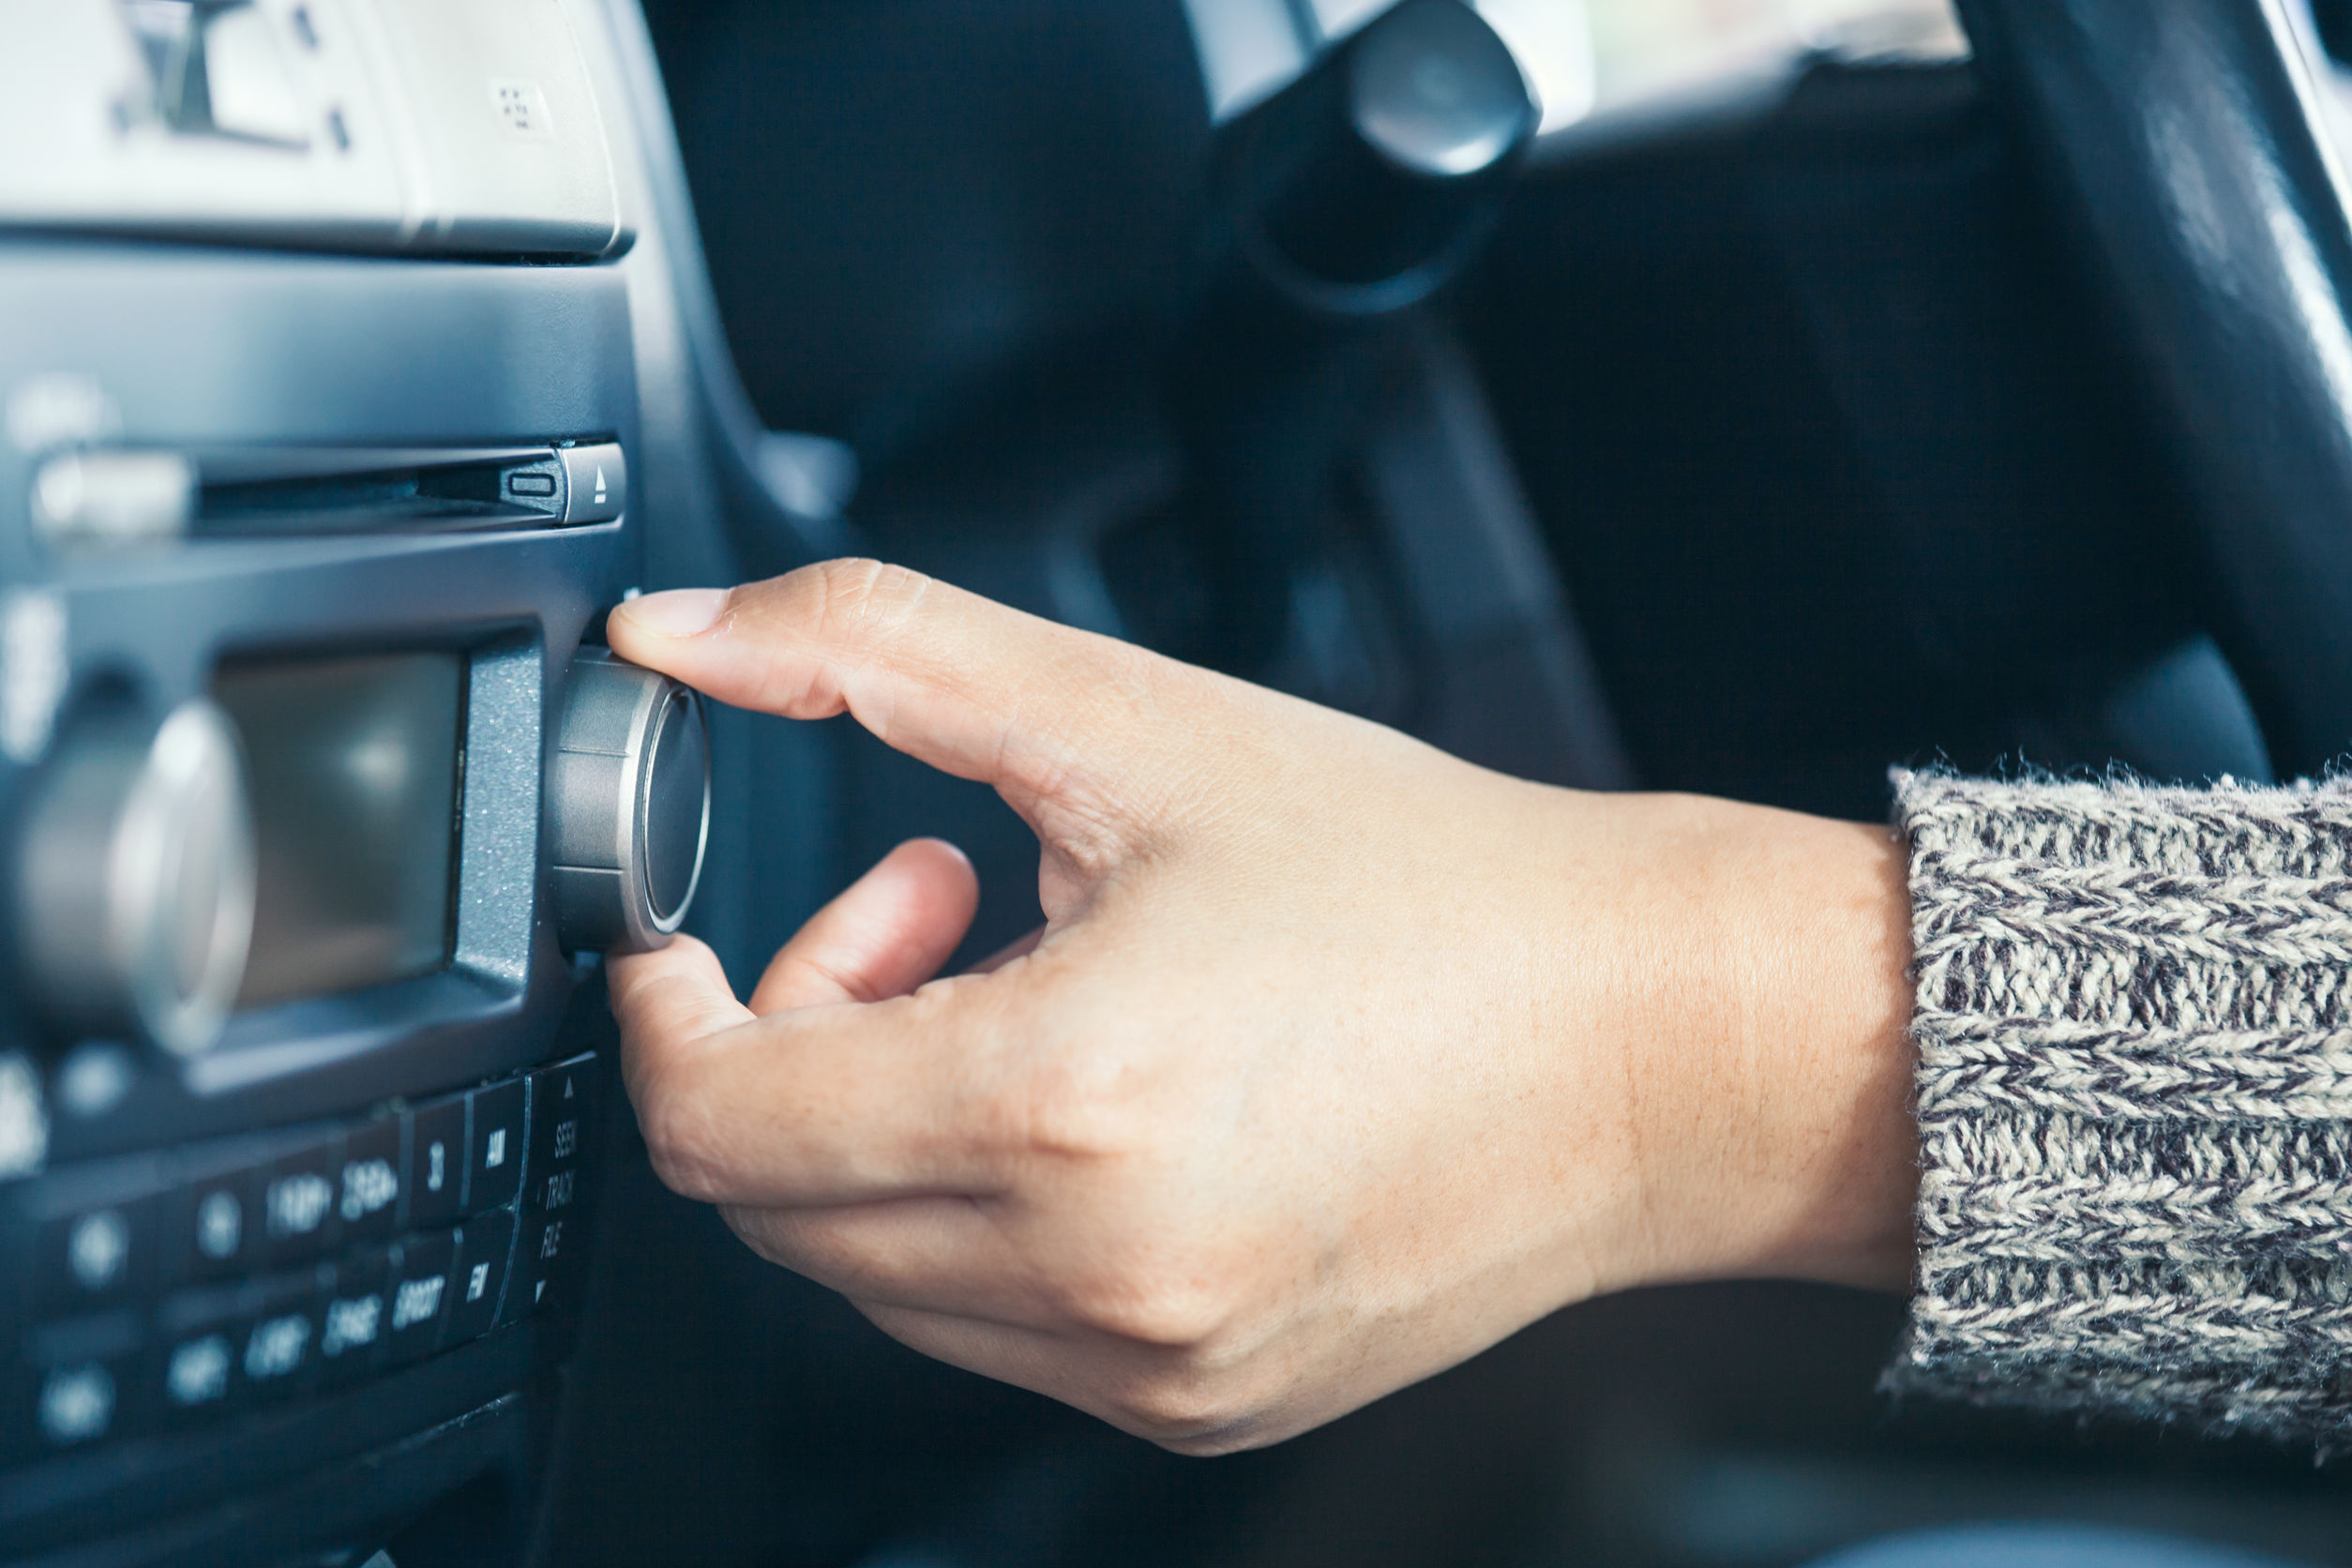 Woman hand adjusting the sound volume of car radio while driving